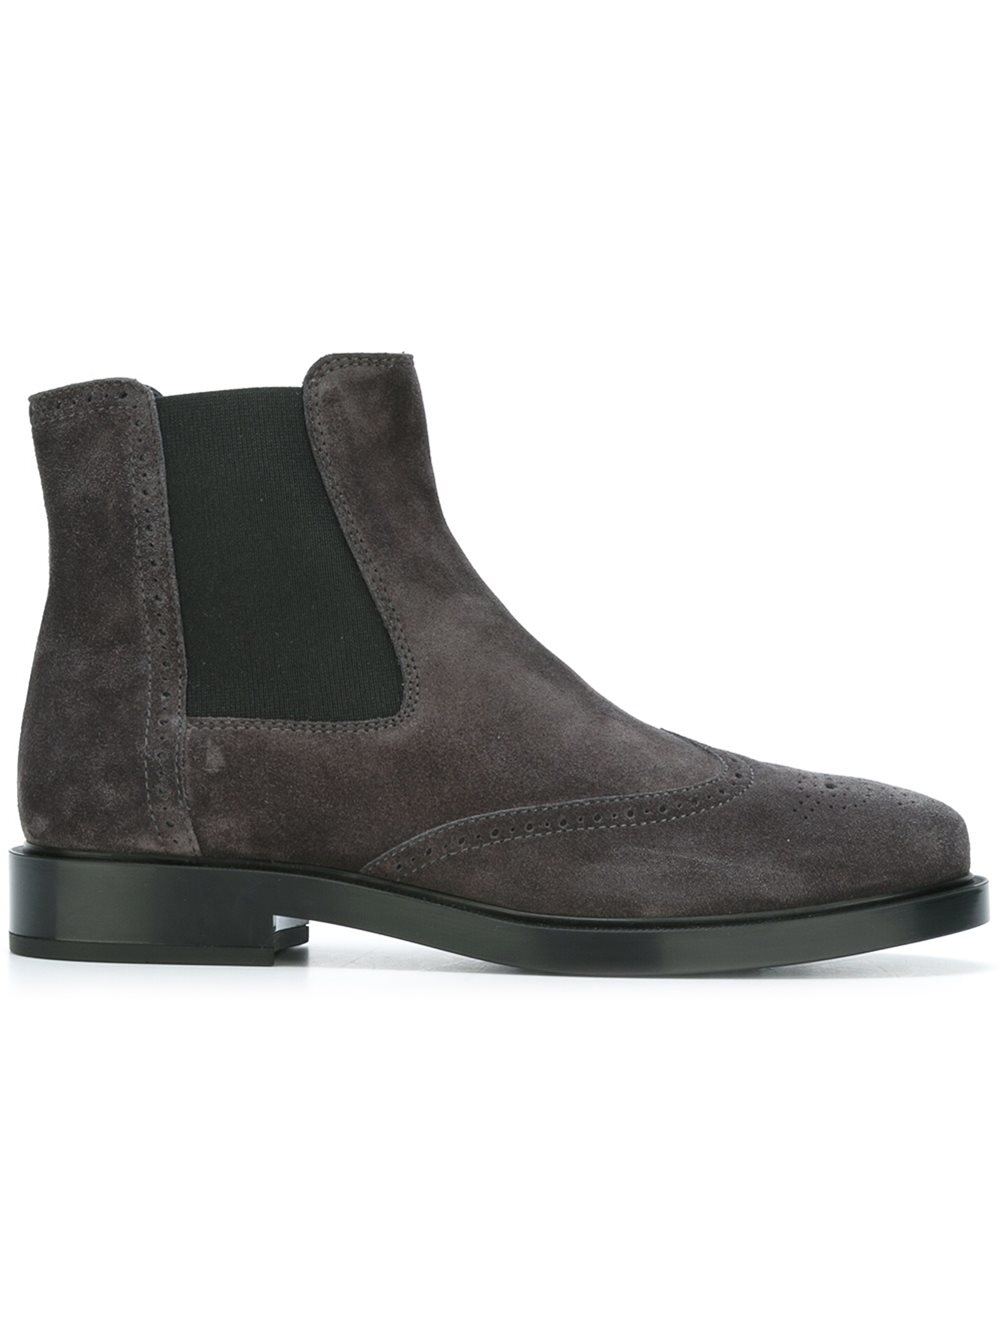 lyst tod 39 s chelsea boots in gray. Black Bedroom Furniture Sets. Home Design Ideas